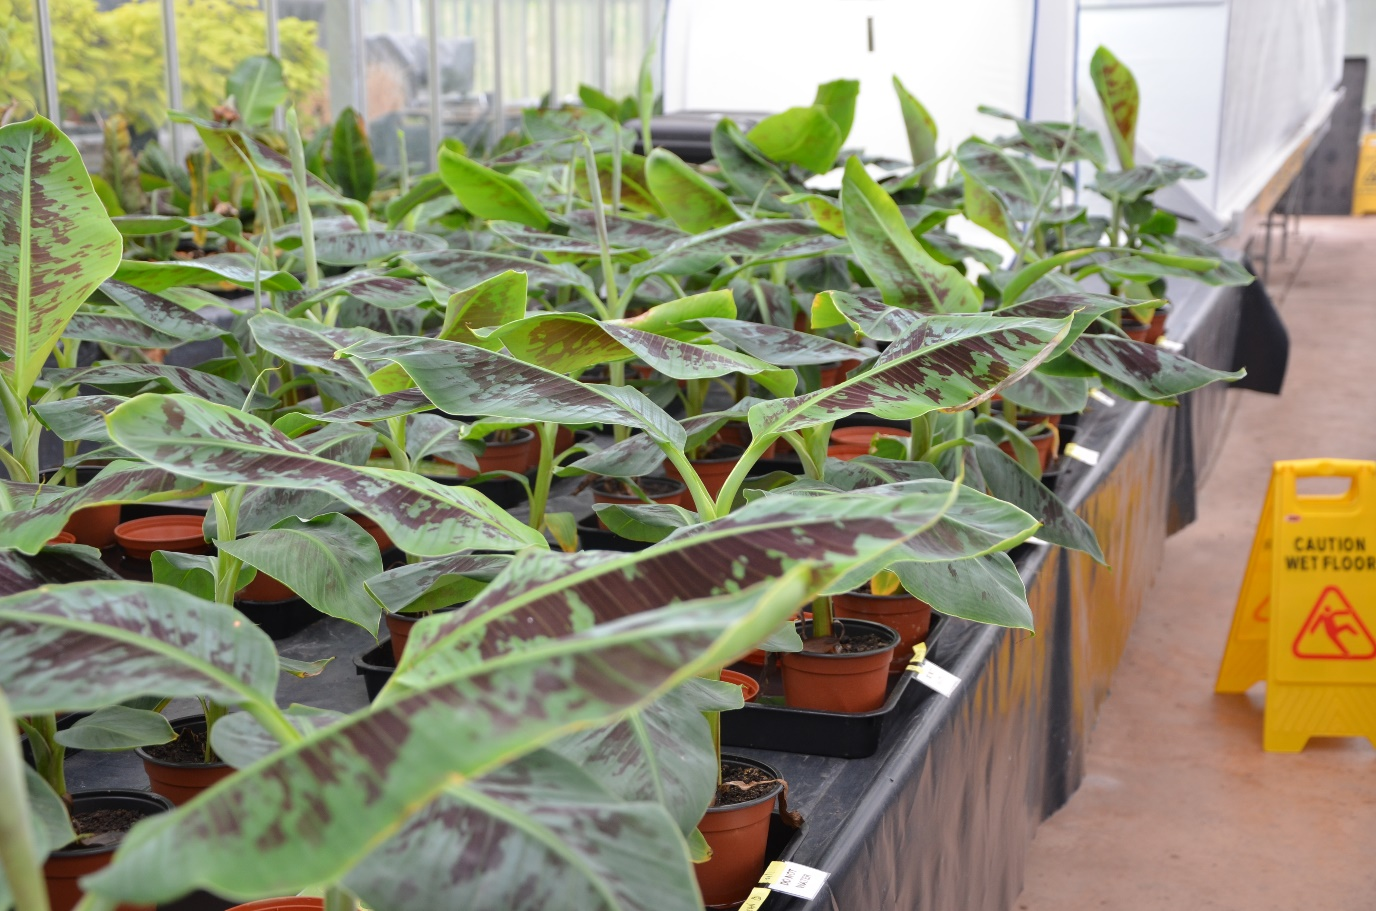 Young banana (Musa acuminata) plants in the University of Exeter greenhouse